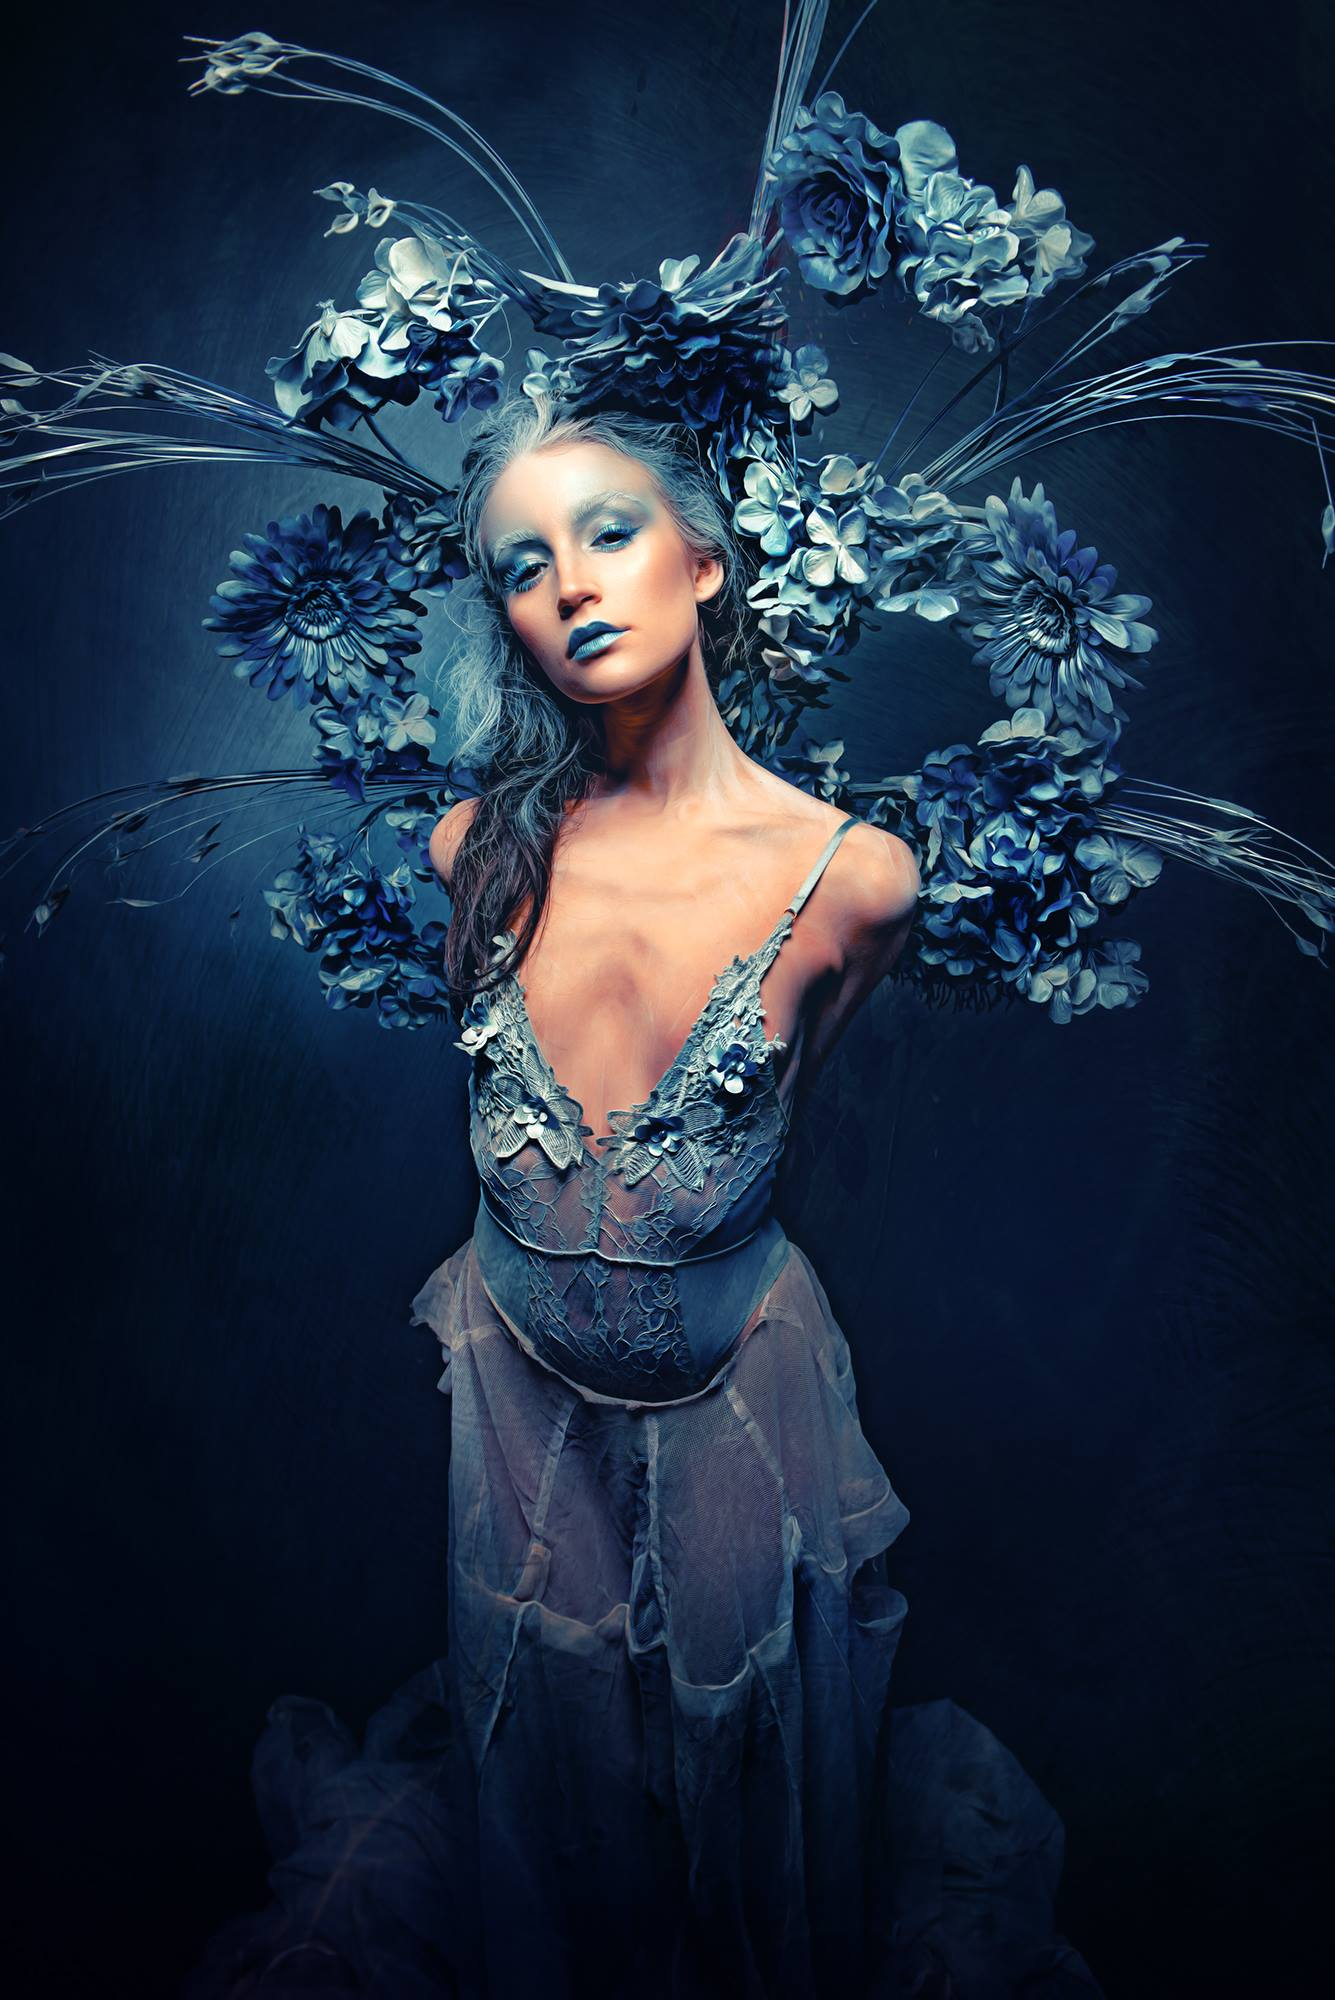 Stefan Gesell Photography – Frontal lobe – Digital art